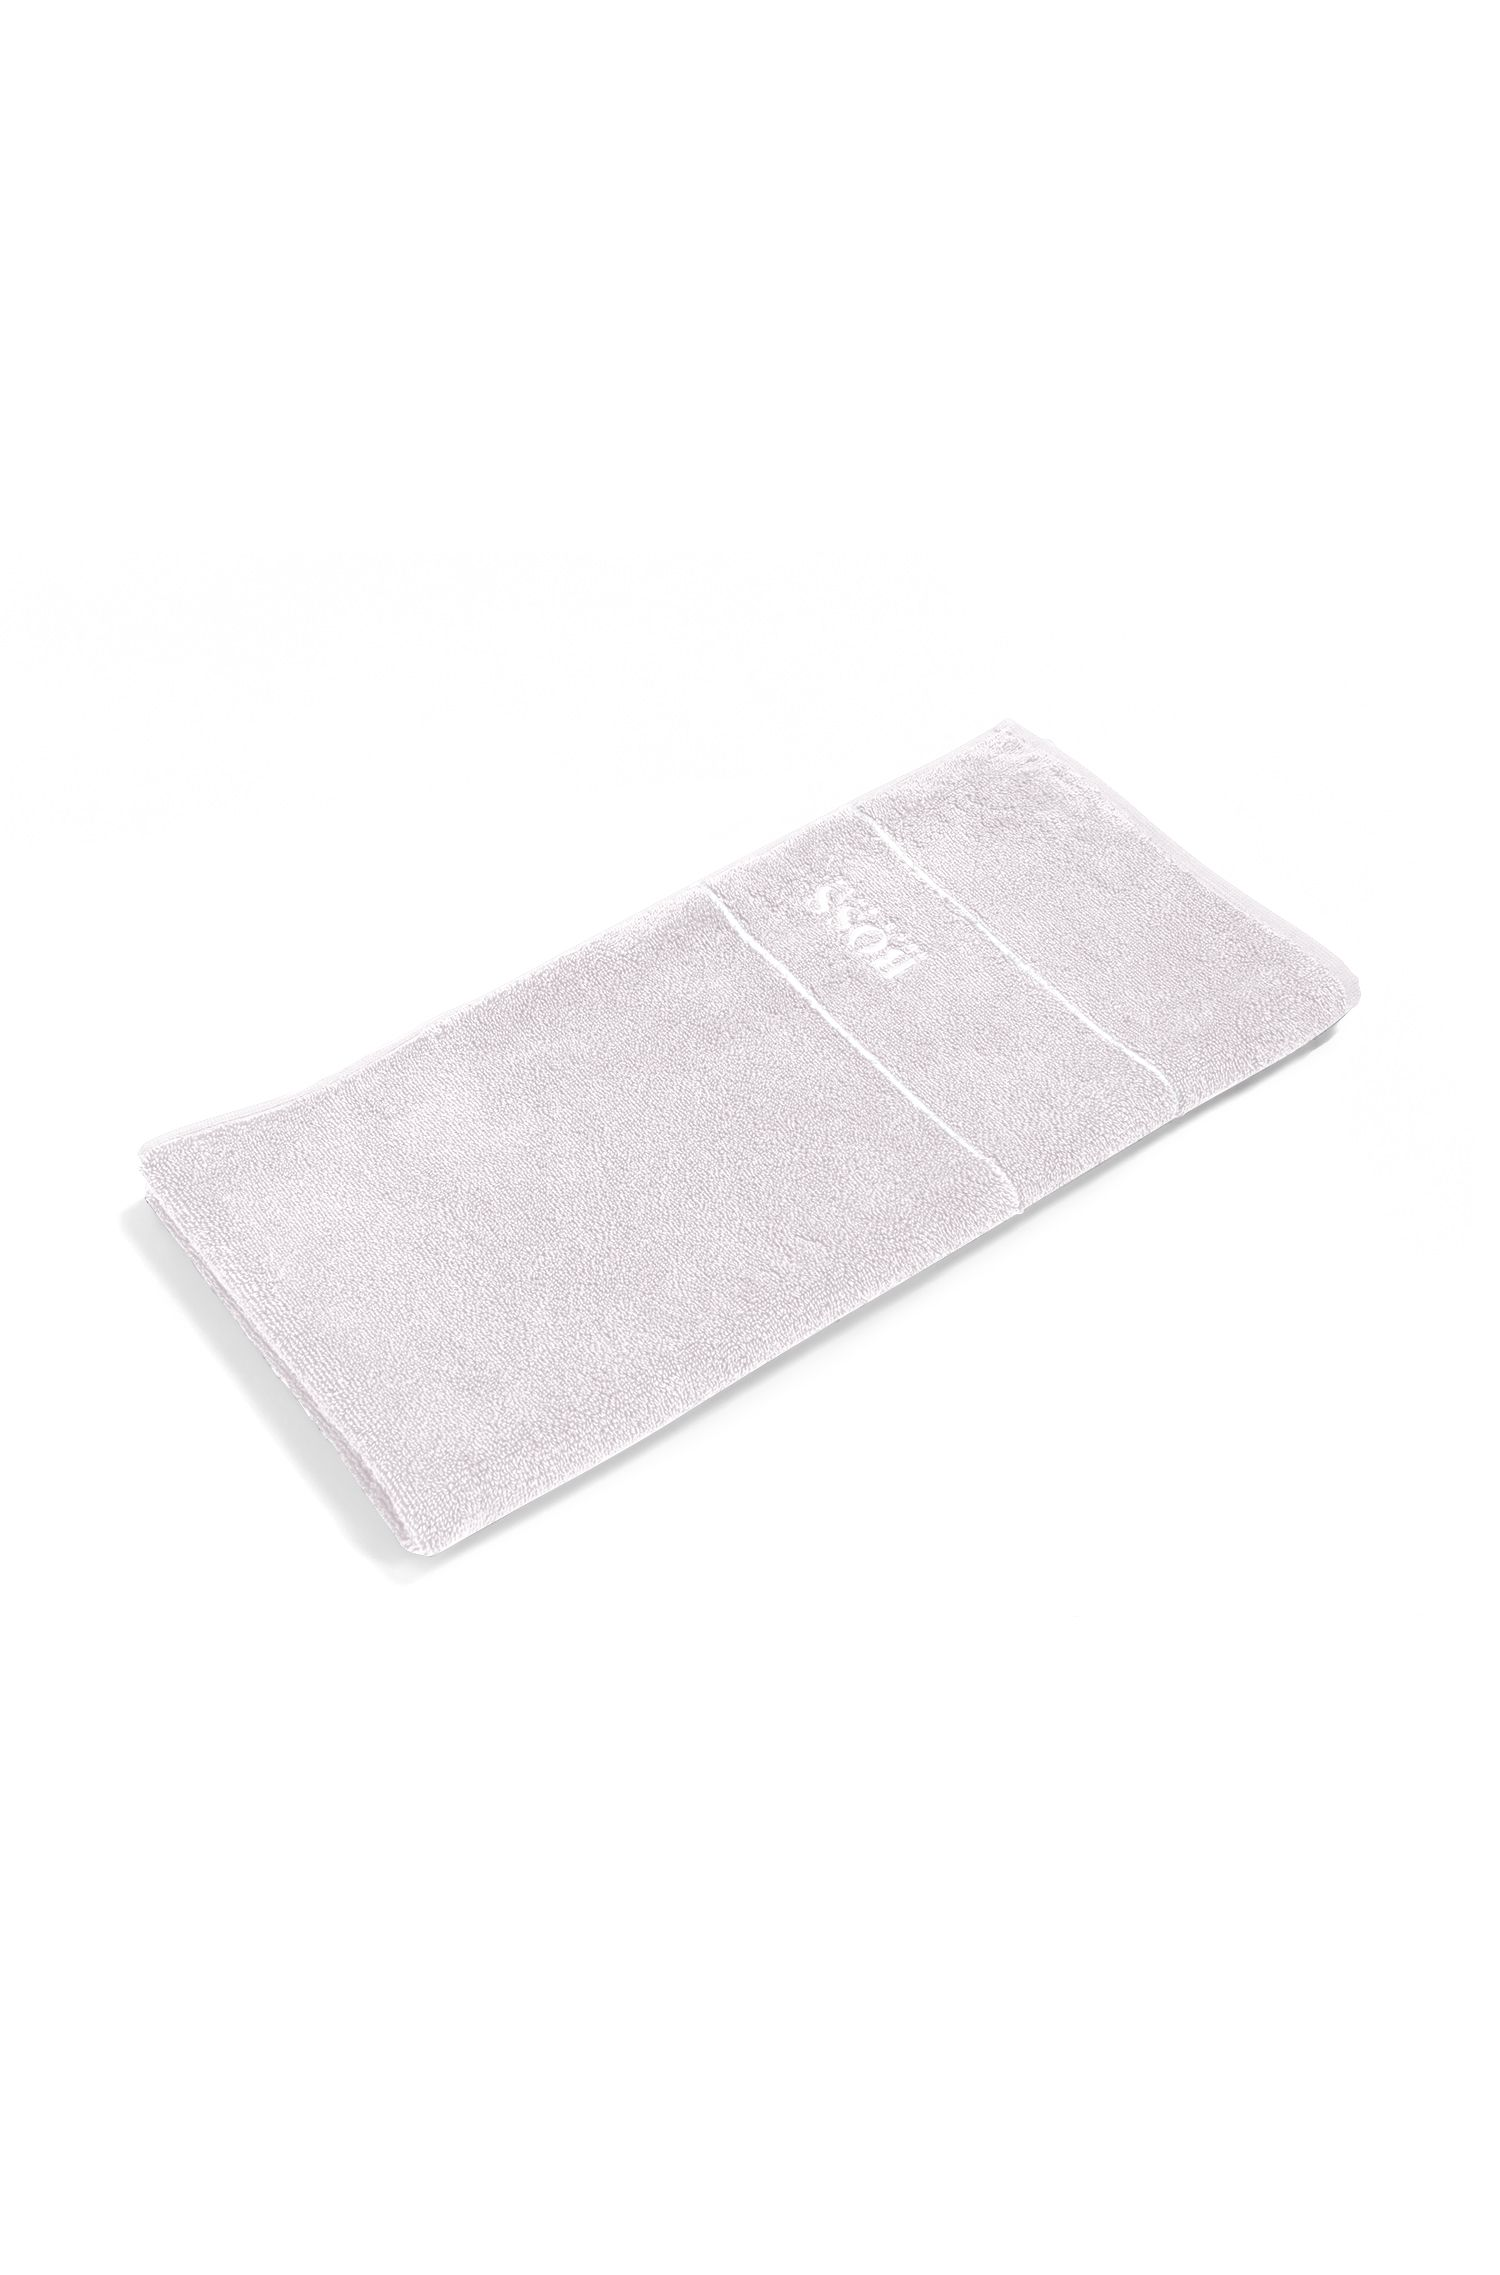 Hand towel 'PLAIN Serviette toile' in cotton terry